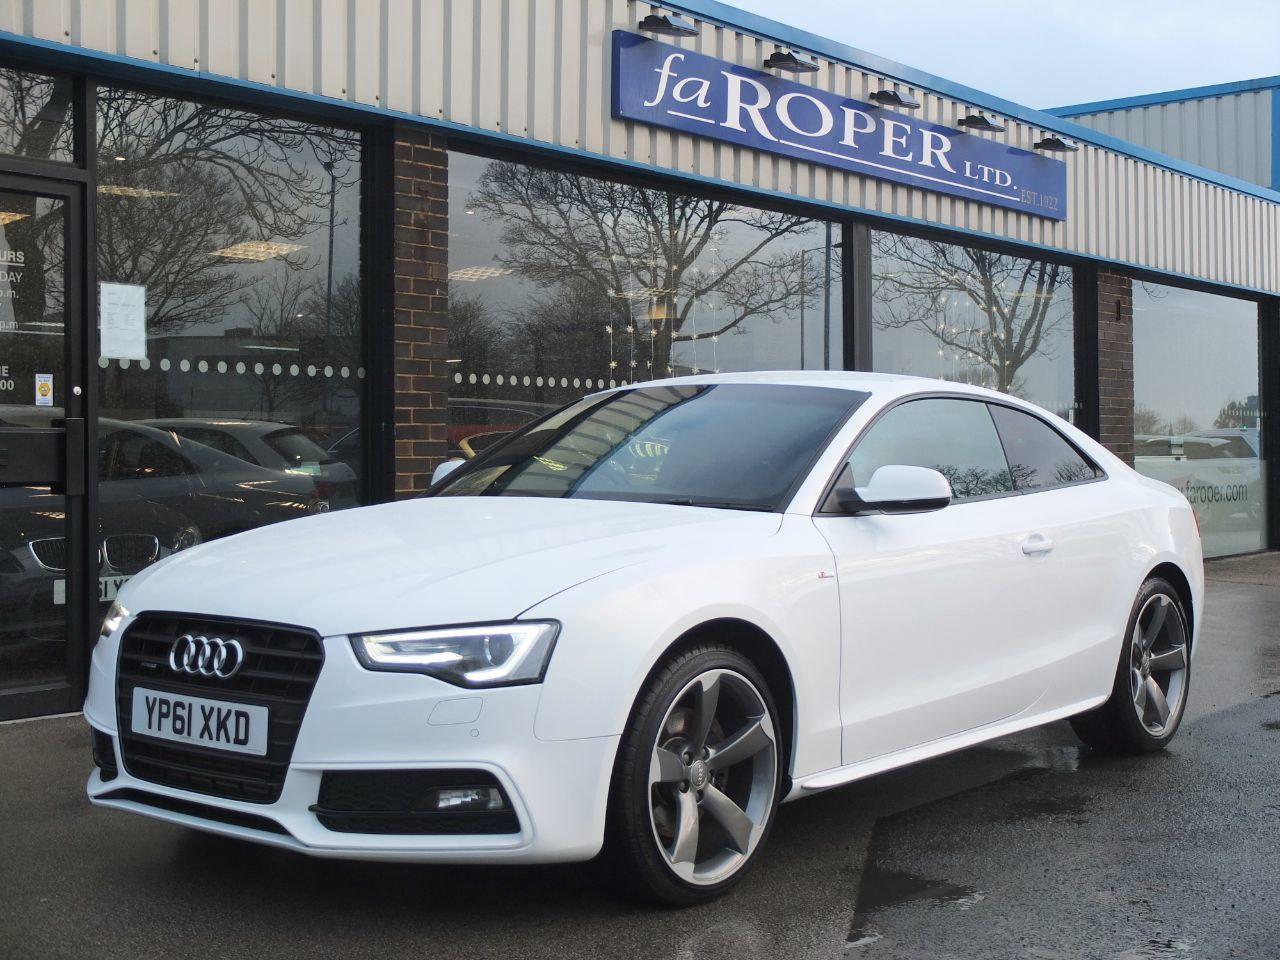 Audi A5 Coupe 3.0 TDI 245ps Quattro Black Edition S Tronic (Facelift Model) +++Spec Coupe Diesel Ibis WhiteAudi A5 Coupe 3.0 TDI 245ps Quattro Black Edition S Tronic (Facelift Model) +++Spec Coupe Diesel Ibis White at fa Roper Ltd Bradford